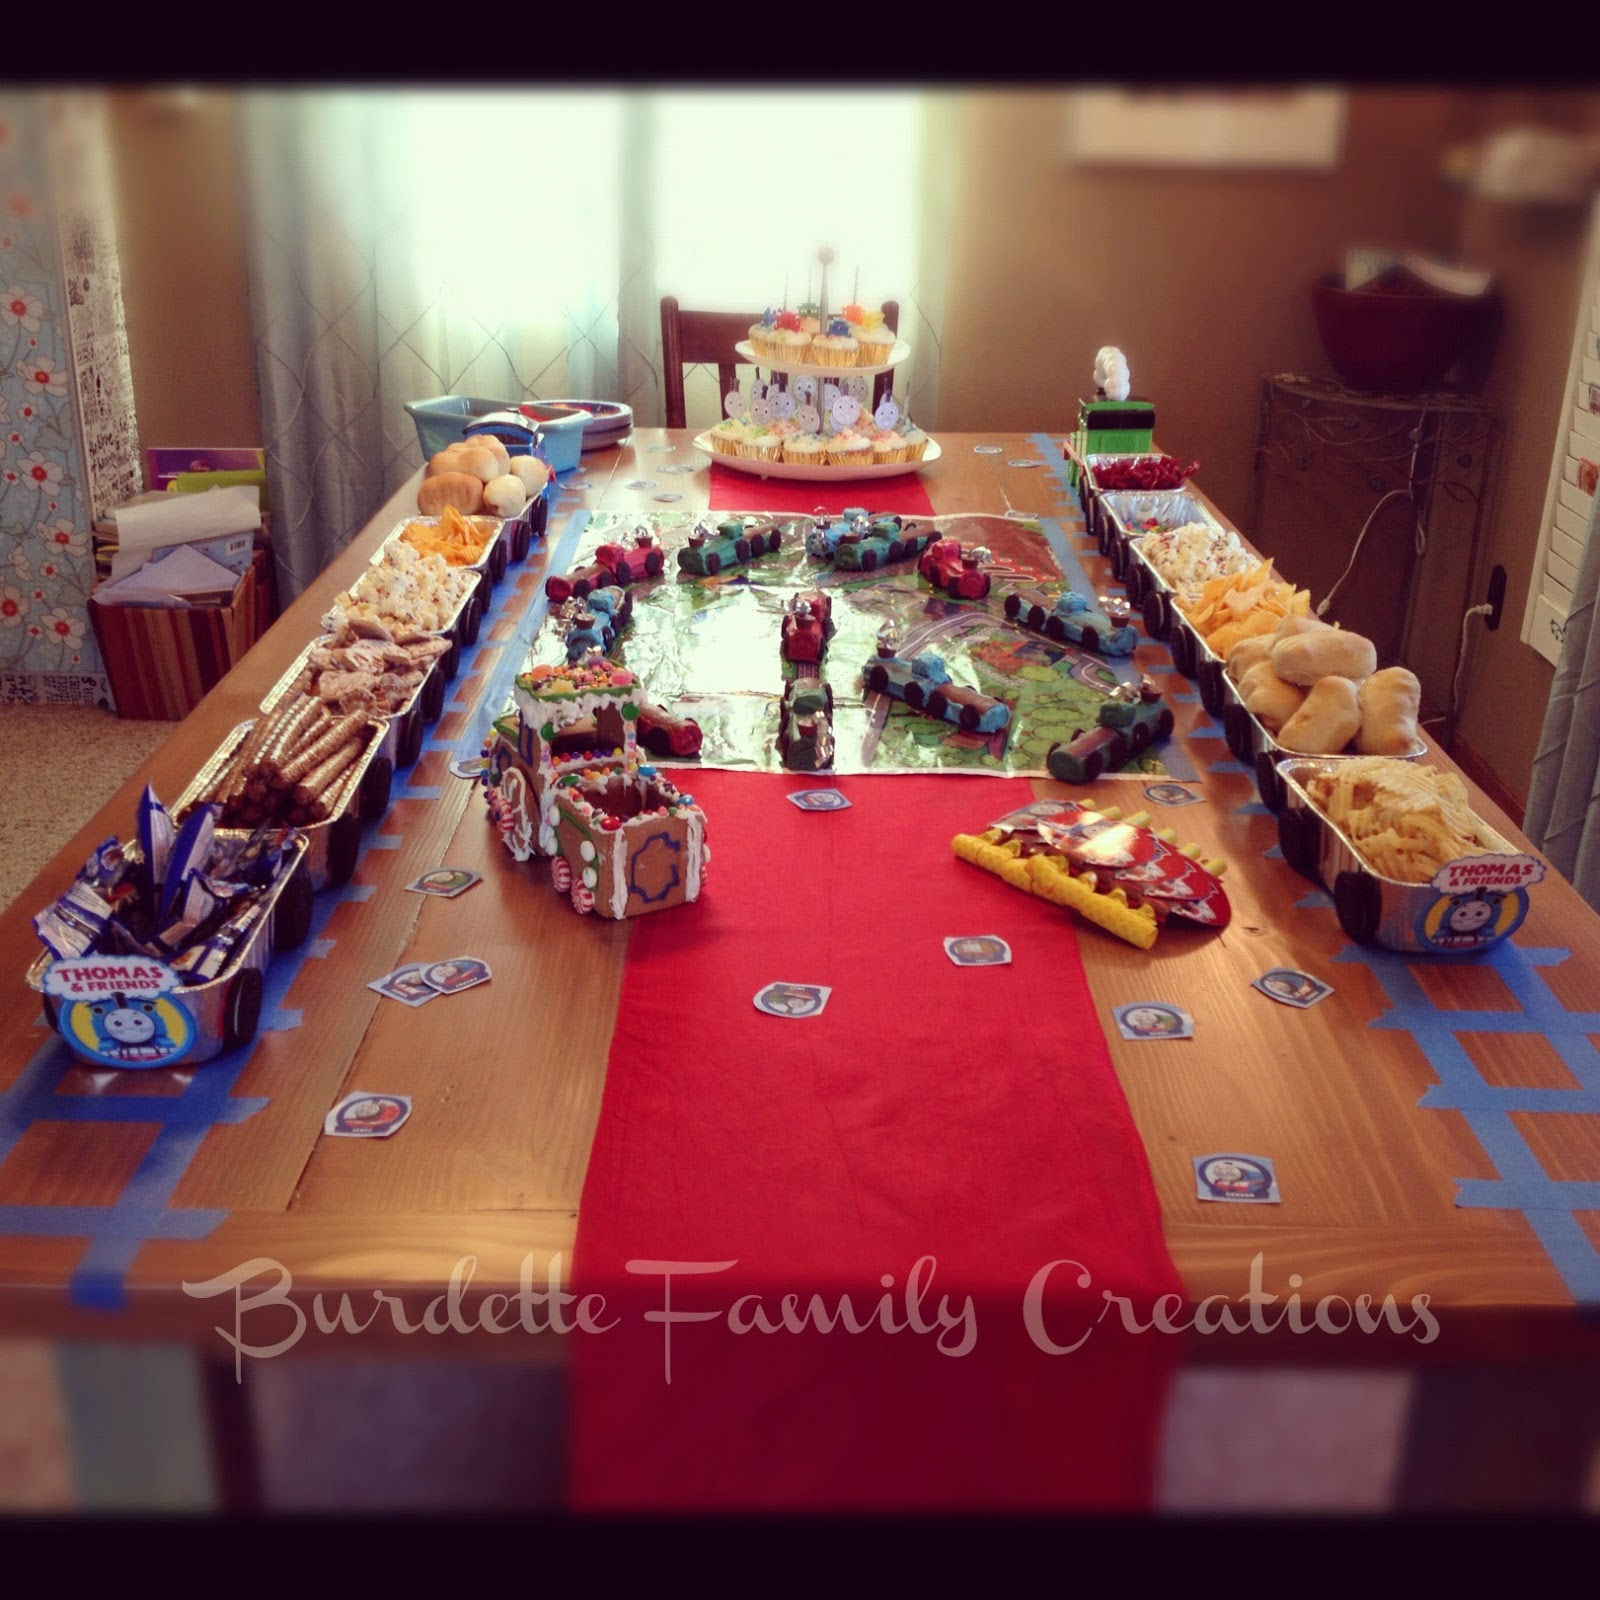 Train Birthday Party: Burdette Family Creations: Thomas The Train Birthday Party